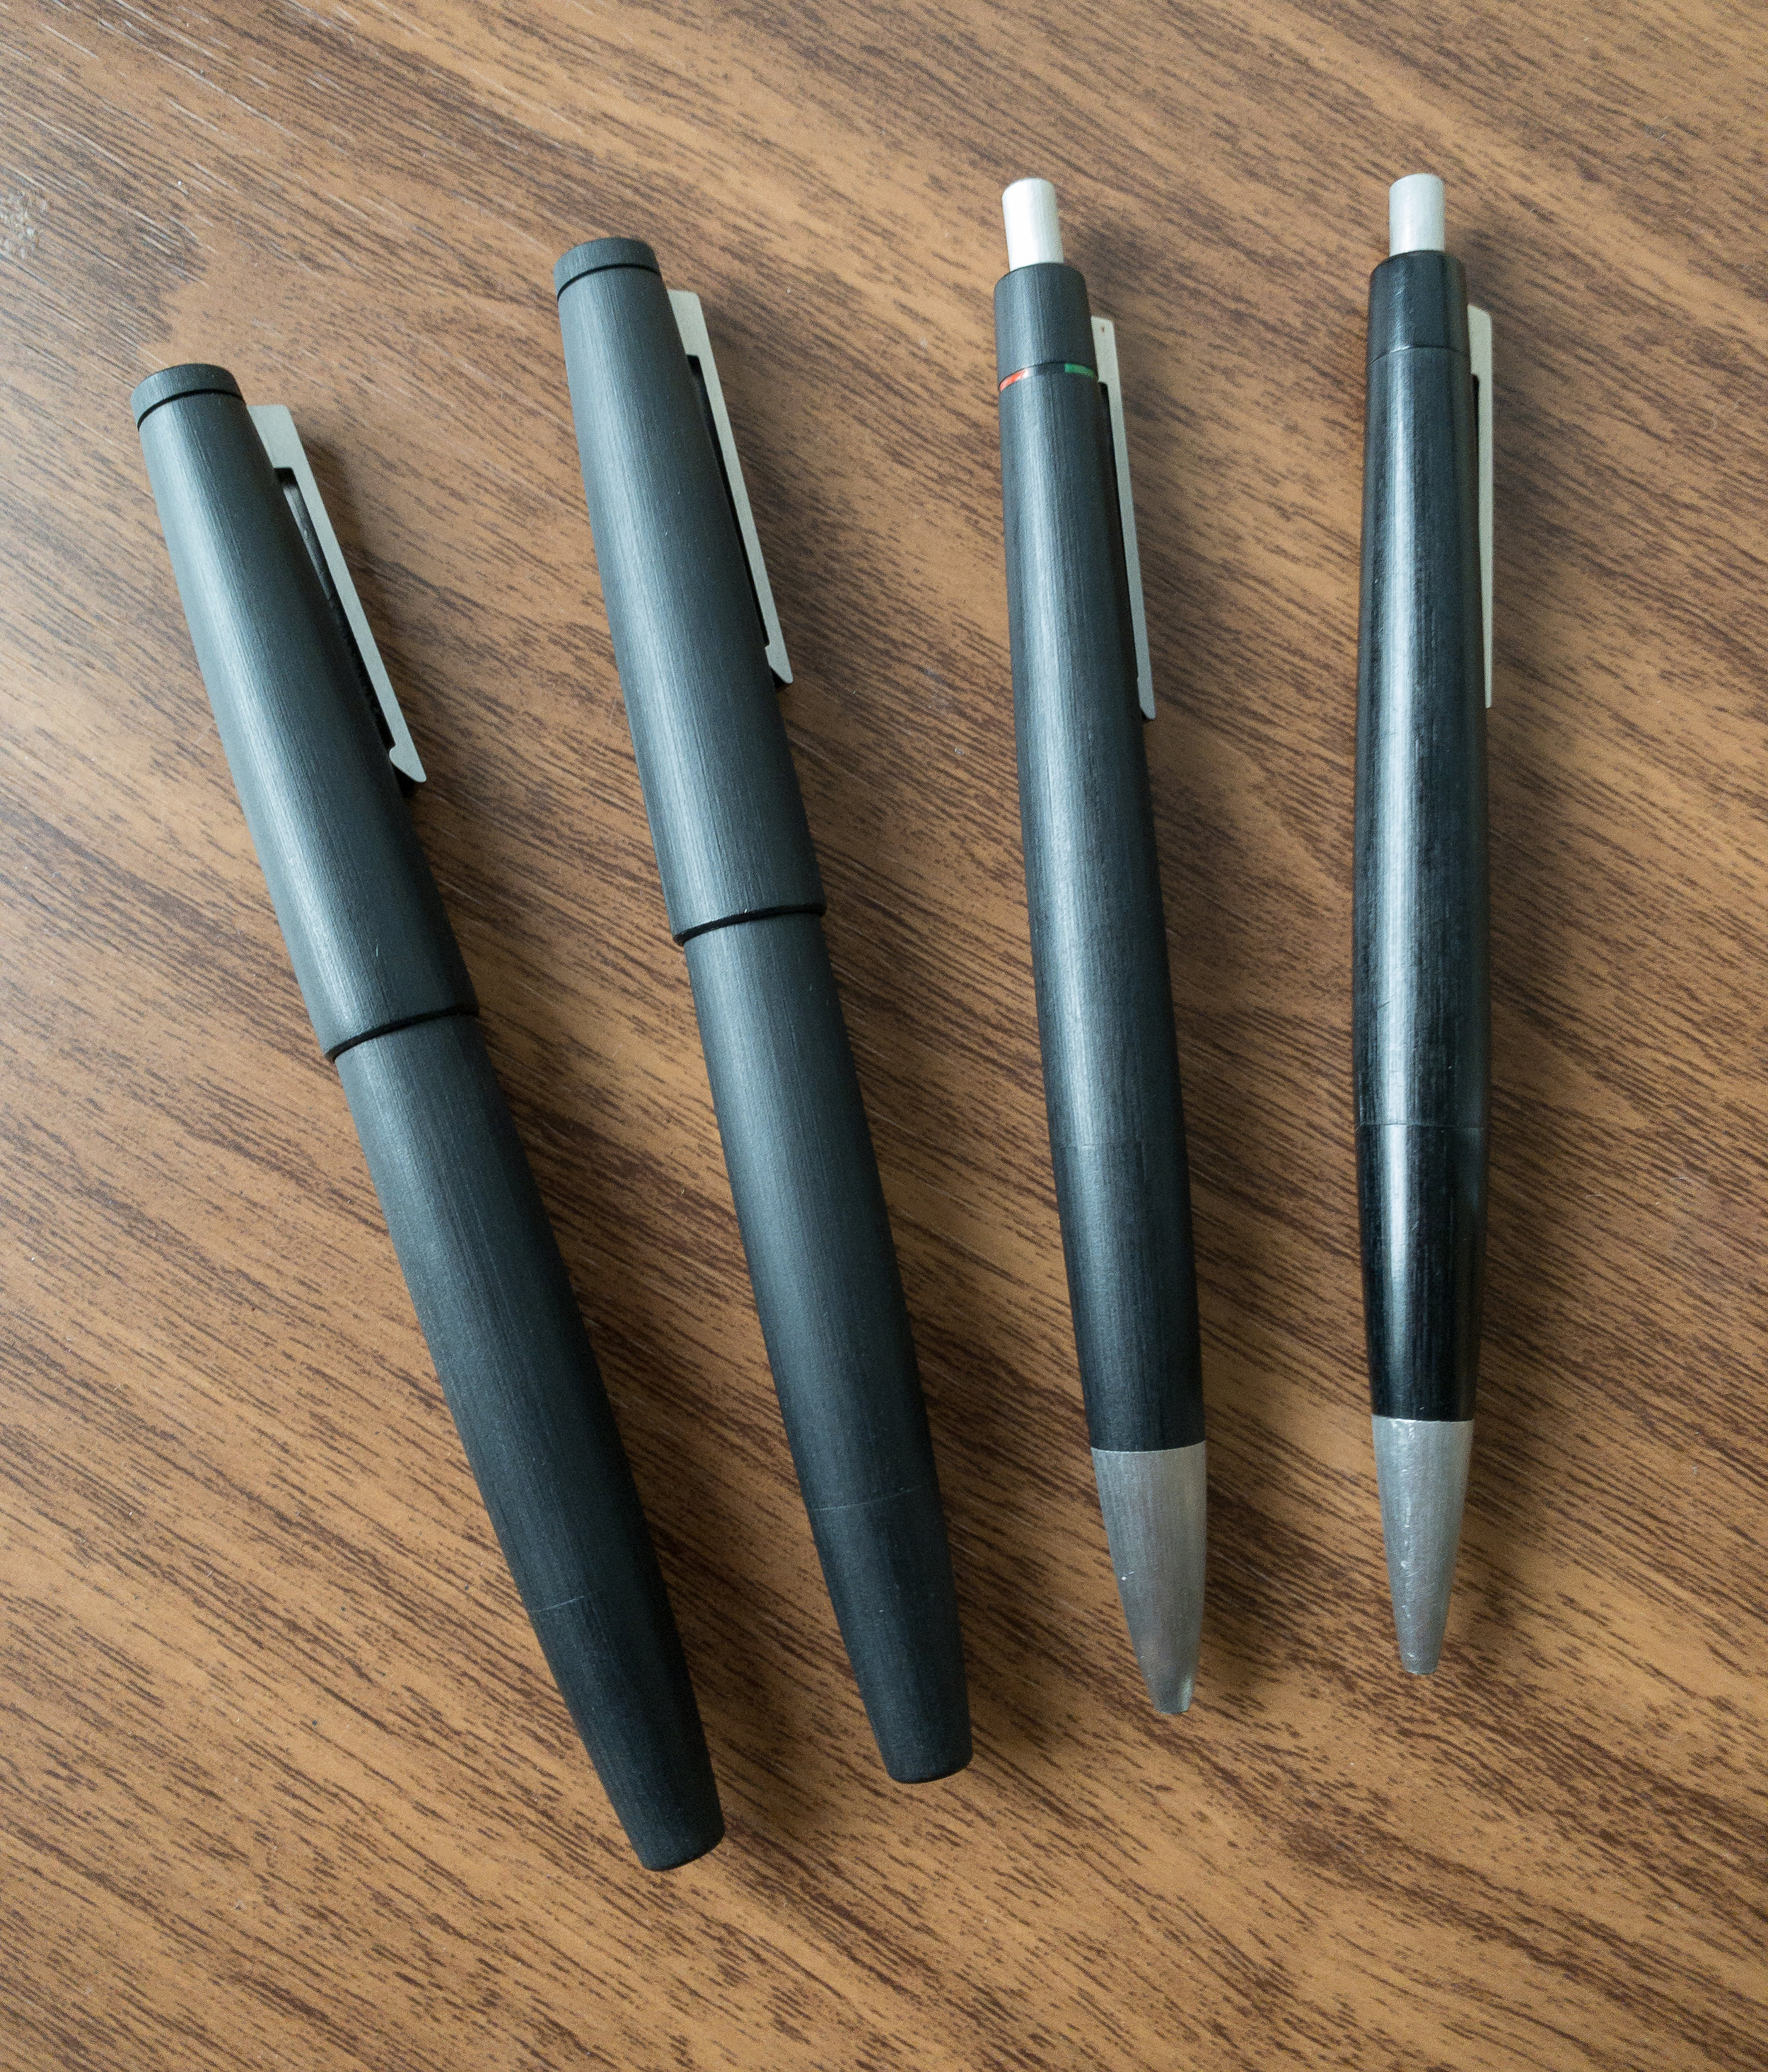 A Lamy 2000 Family Portrait: From left, the fountain pen, rollerball, 4 Color Ballpoint/multi pen, and standard ballpoint. The ultimate daily carry?